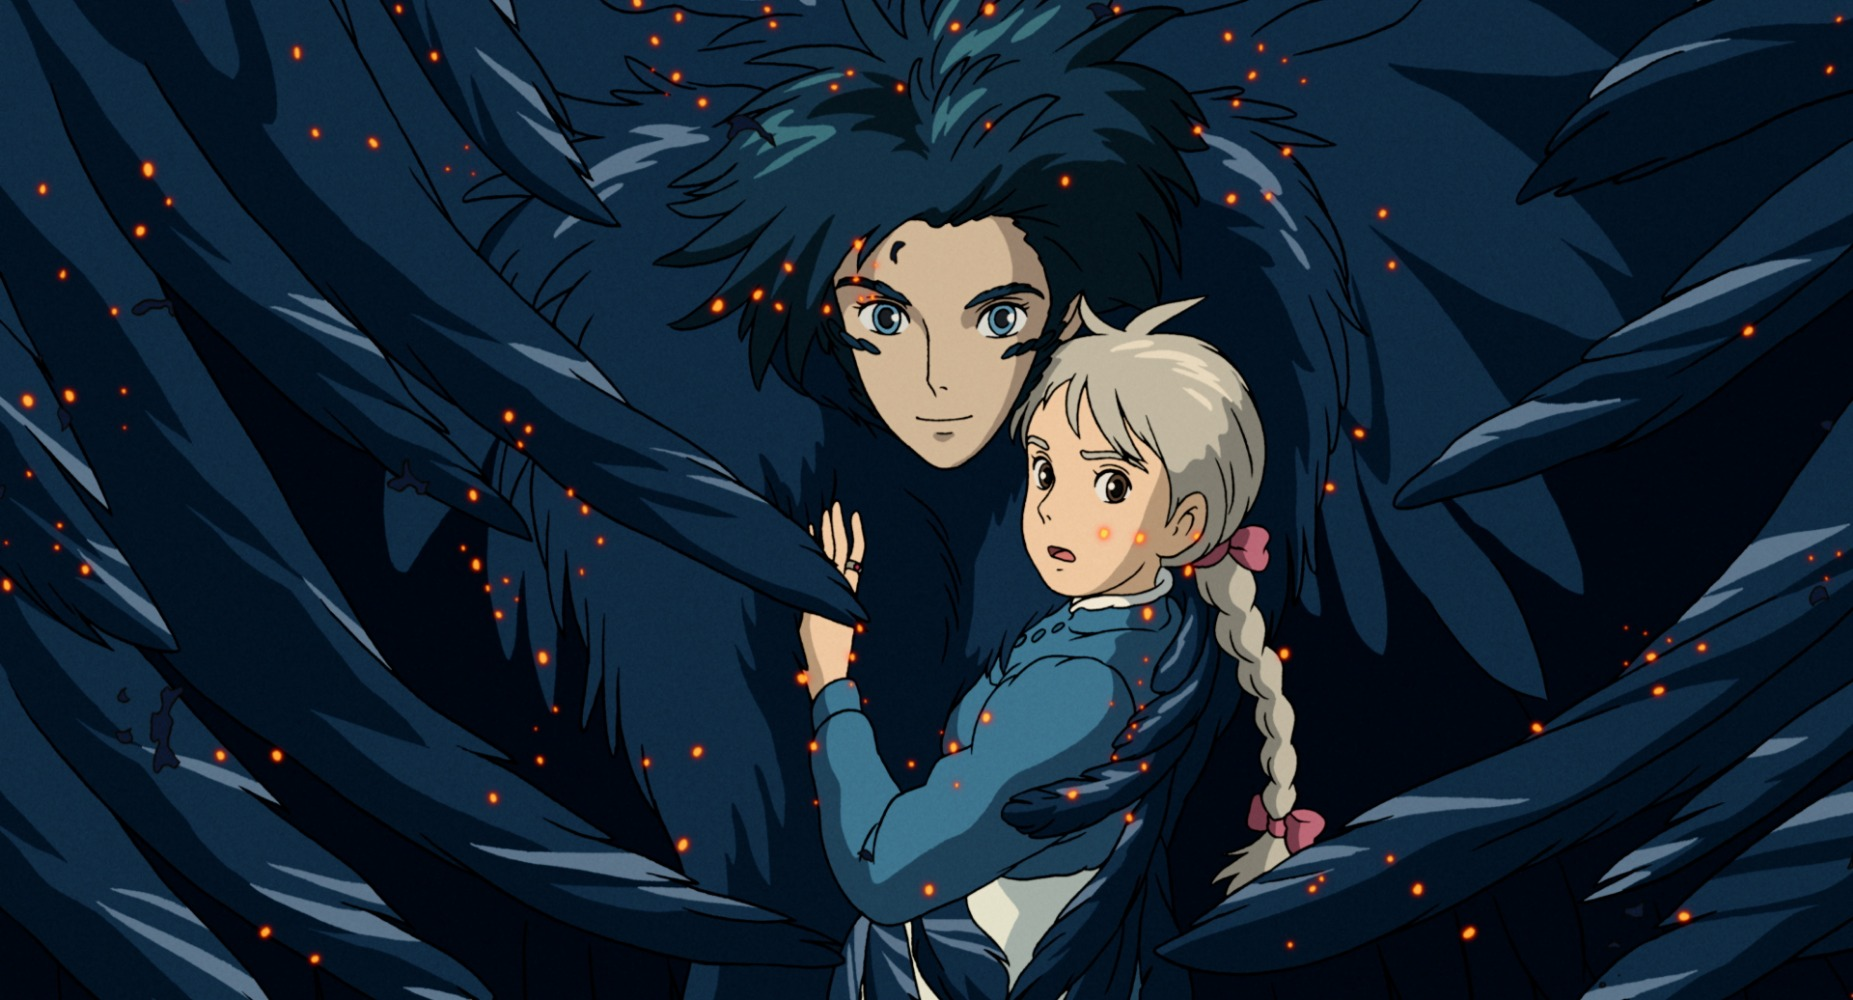 Howl's Moving Castle - Anime Honors Love, Dreams, Freedom and Happiness